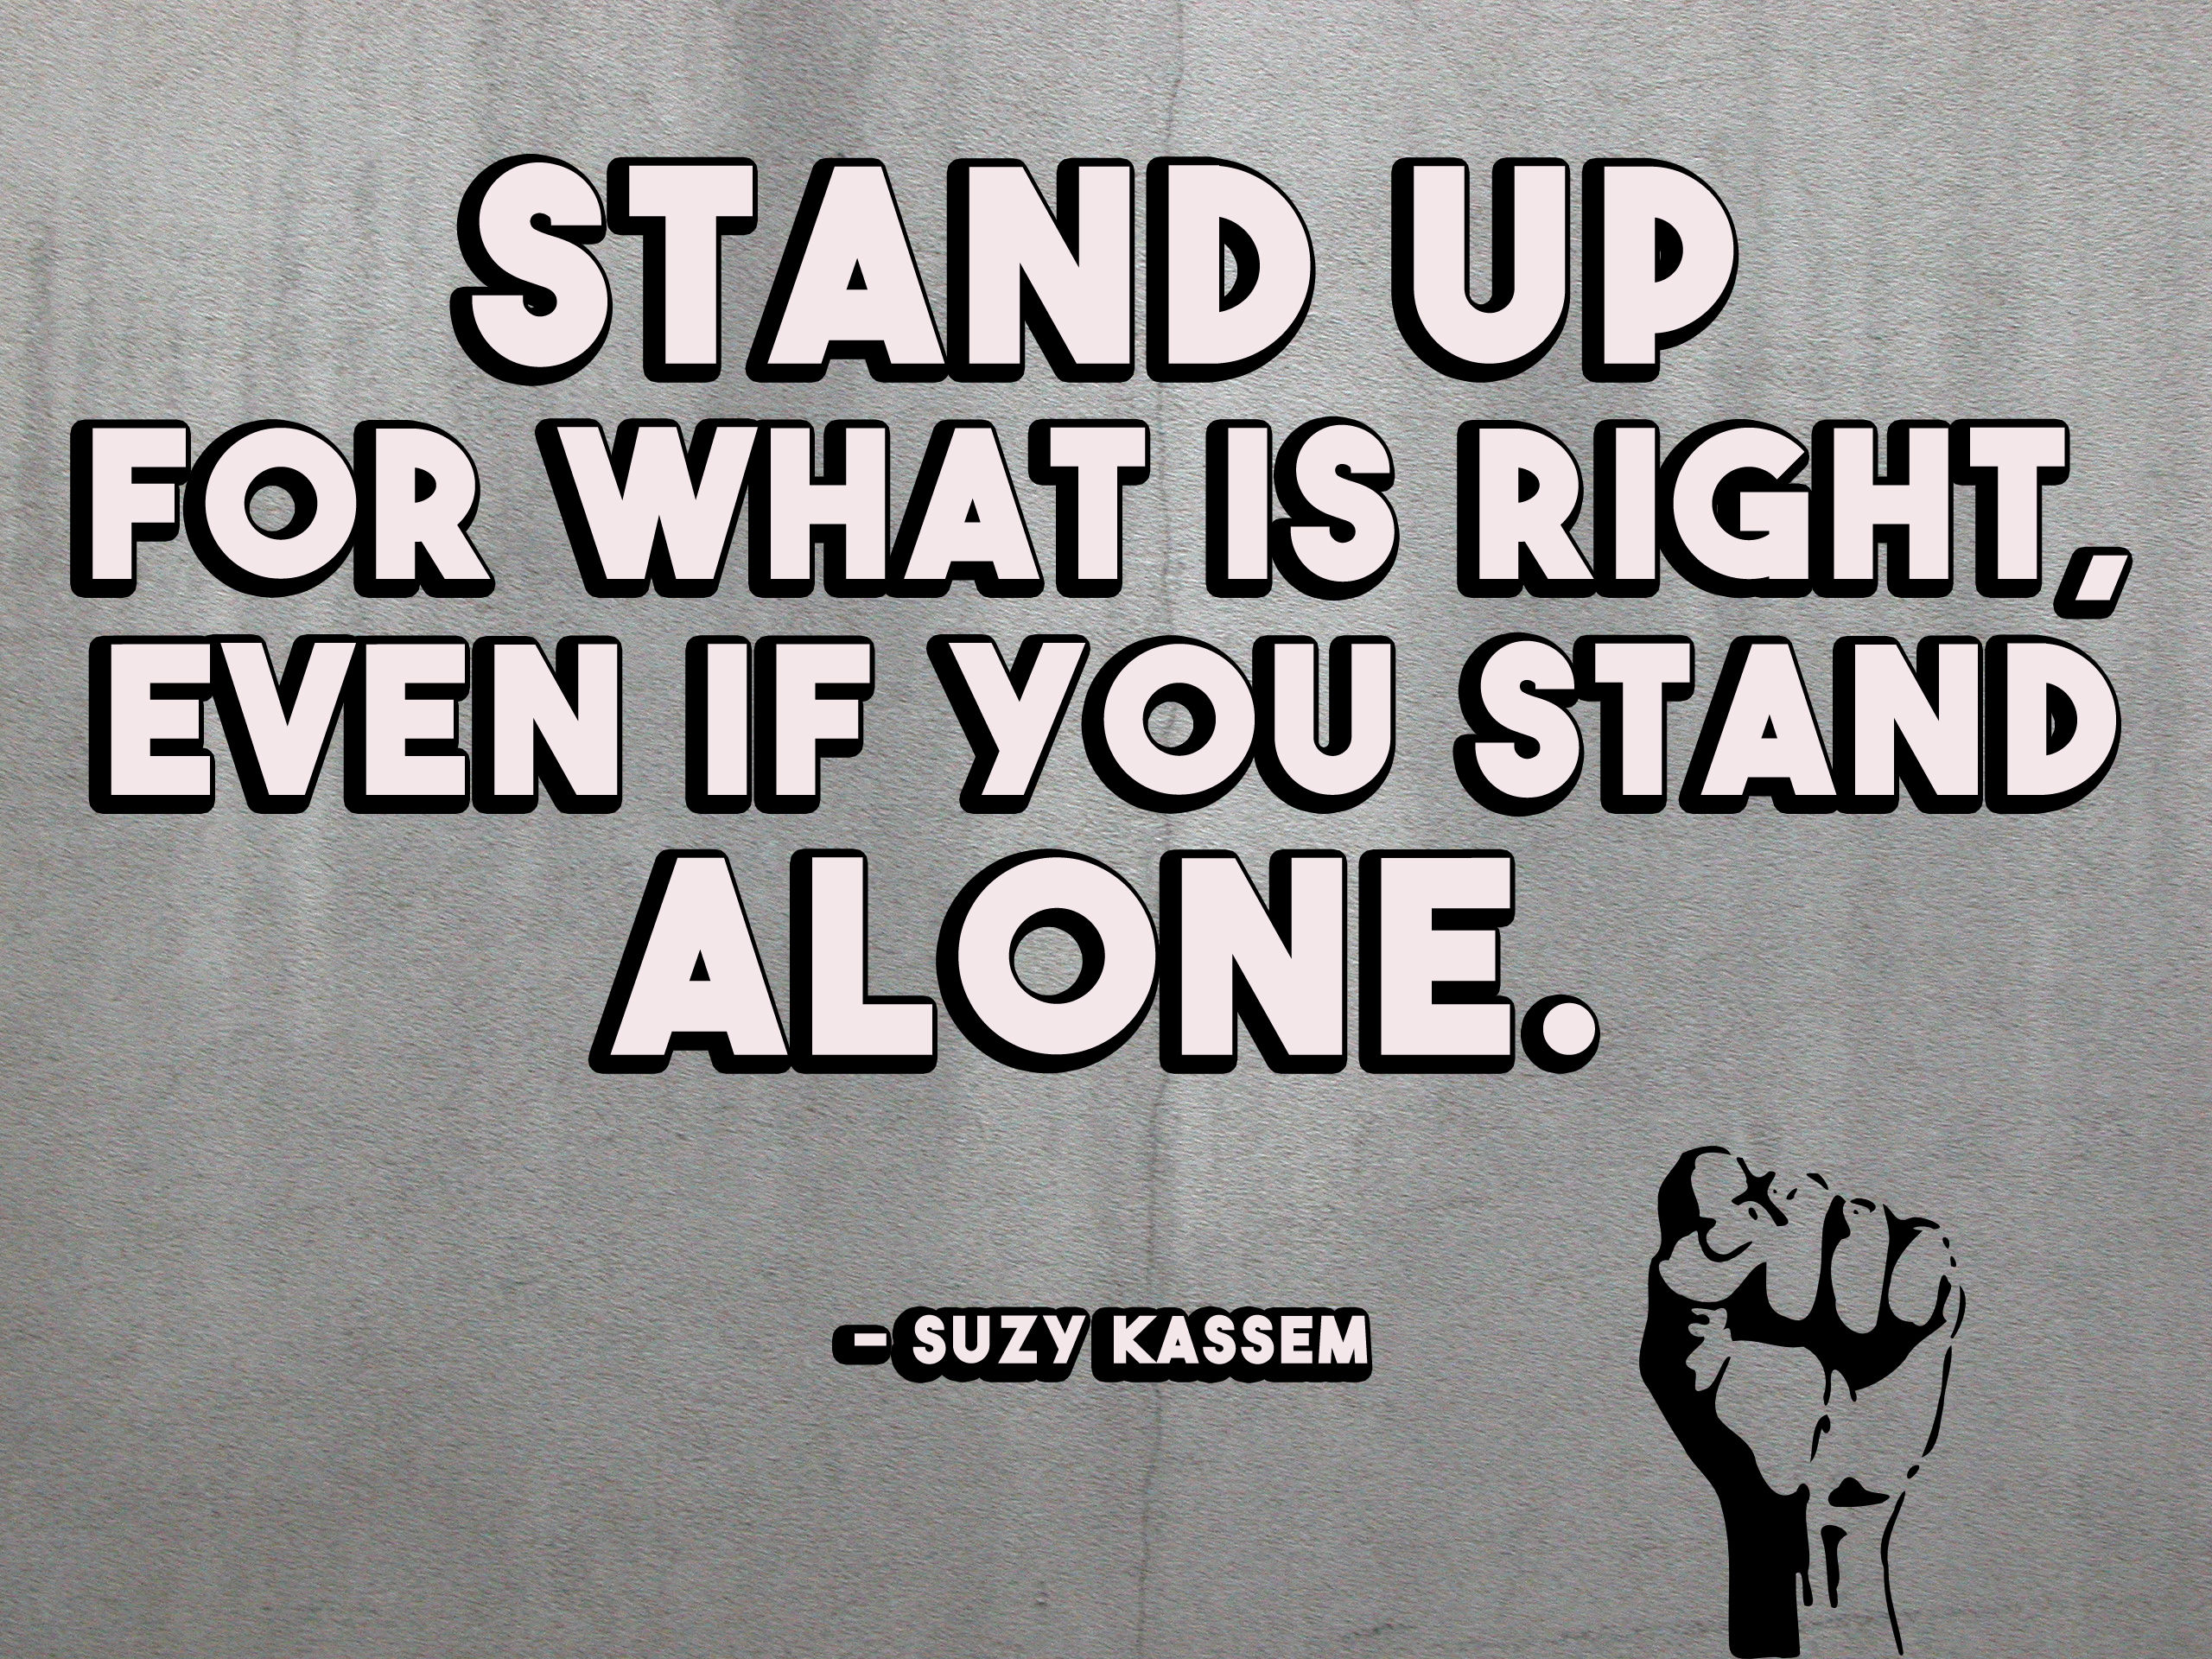 Stand Up Quotes Stand Up For What Is Right Even If You Stand Alone. Suzy Kassem  Stand Up Quotes